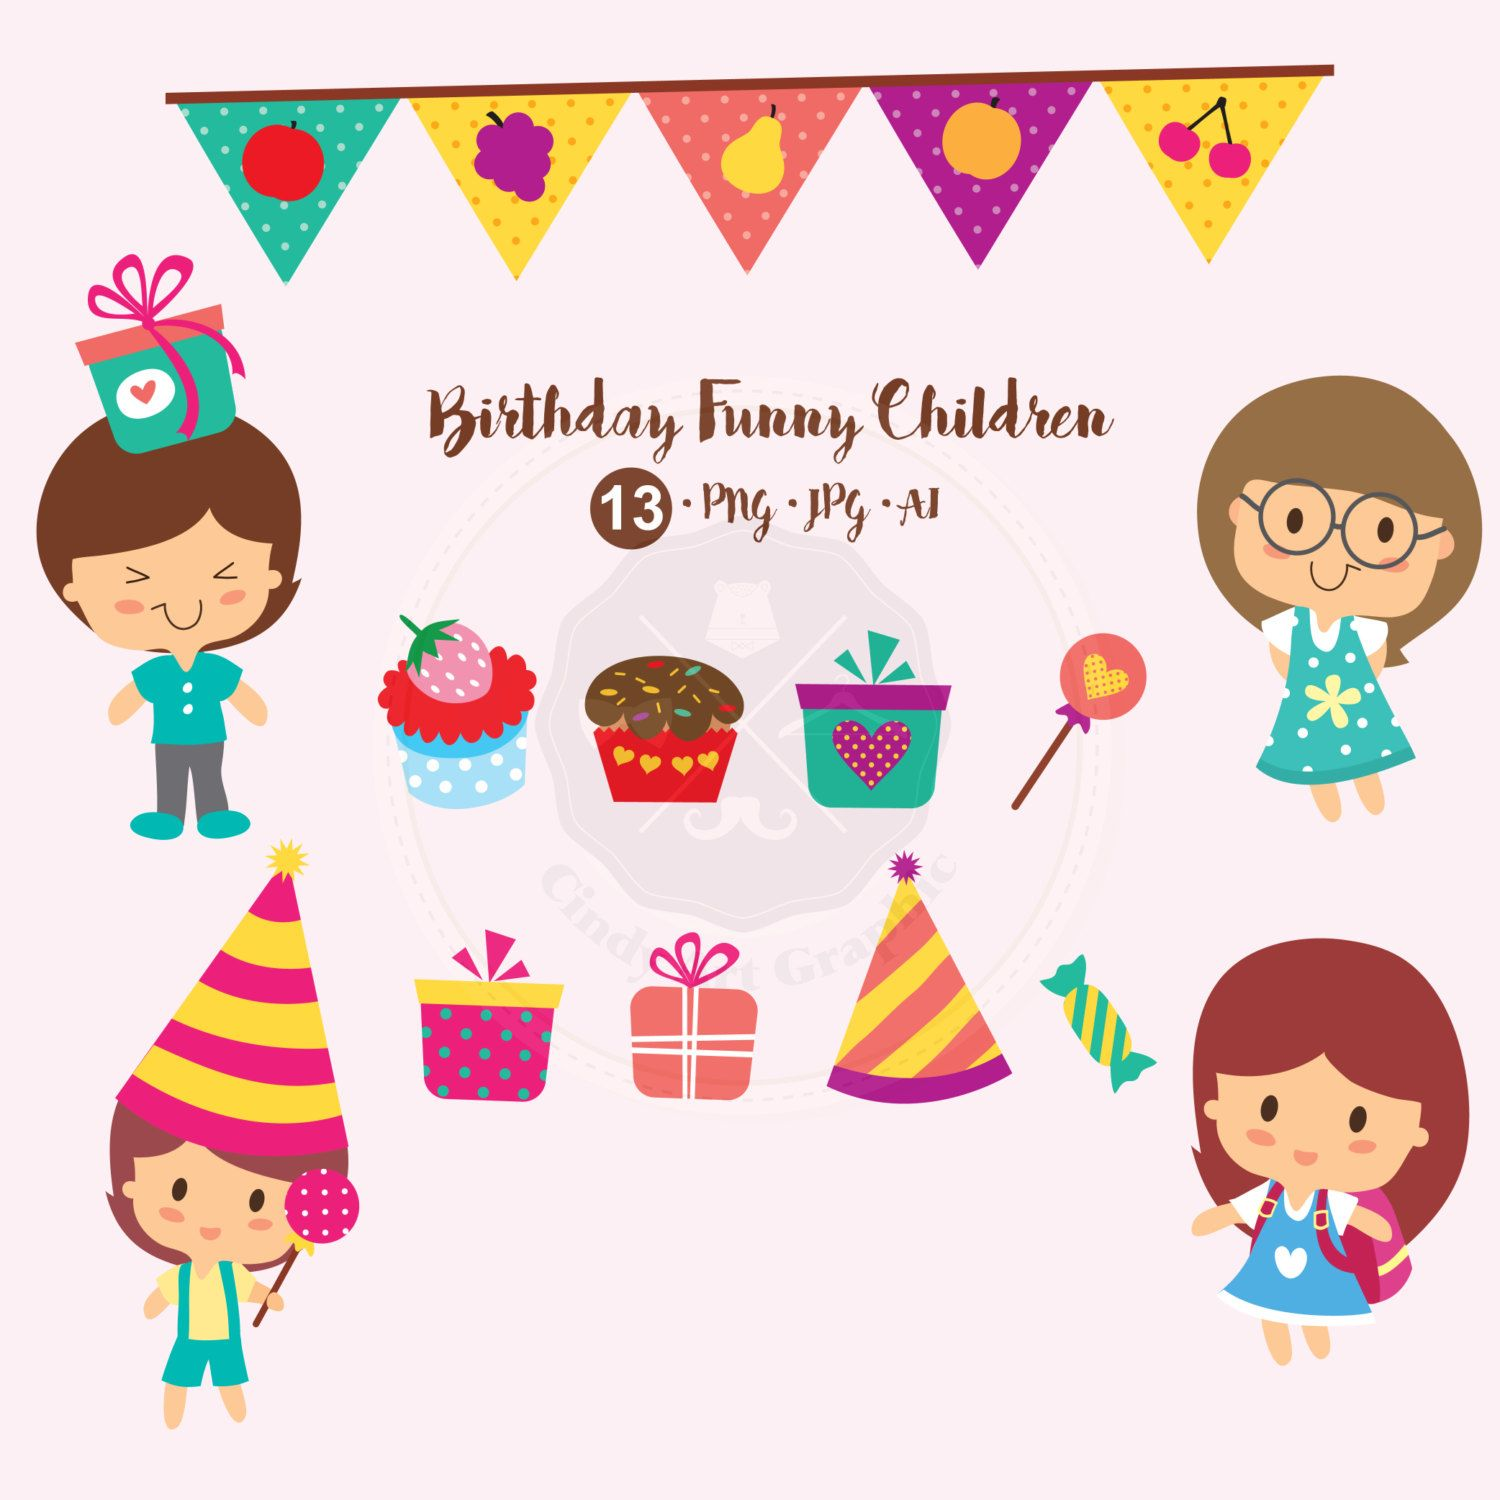 Birthday Funny Children Clipart birthdayf clipart kid clipart